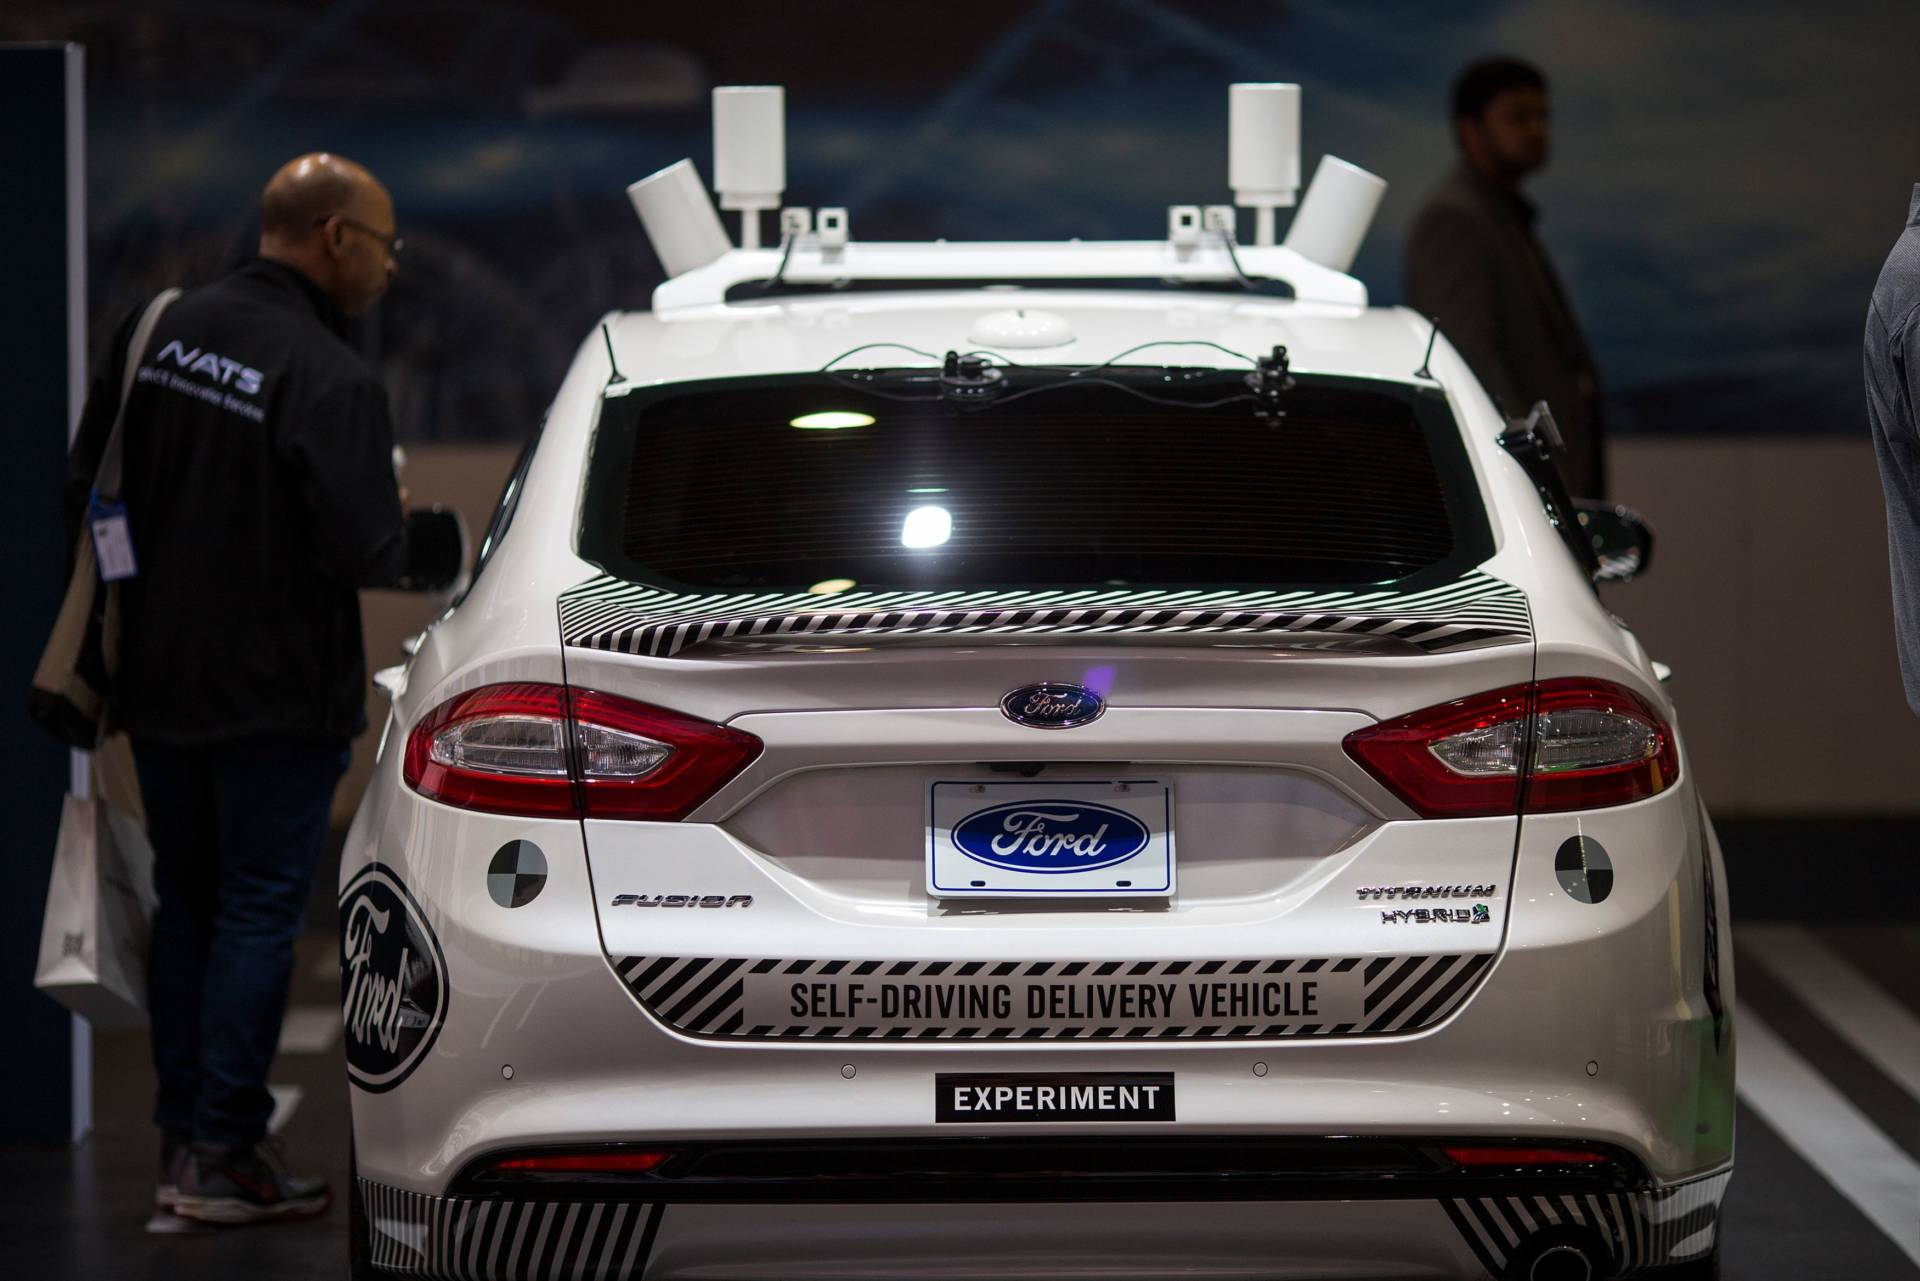 An experimental Ford Fusion self-driving delivery car is displayed at CES in Las Vegas, Nevada. David McNew/AFP/Getty Images